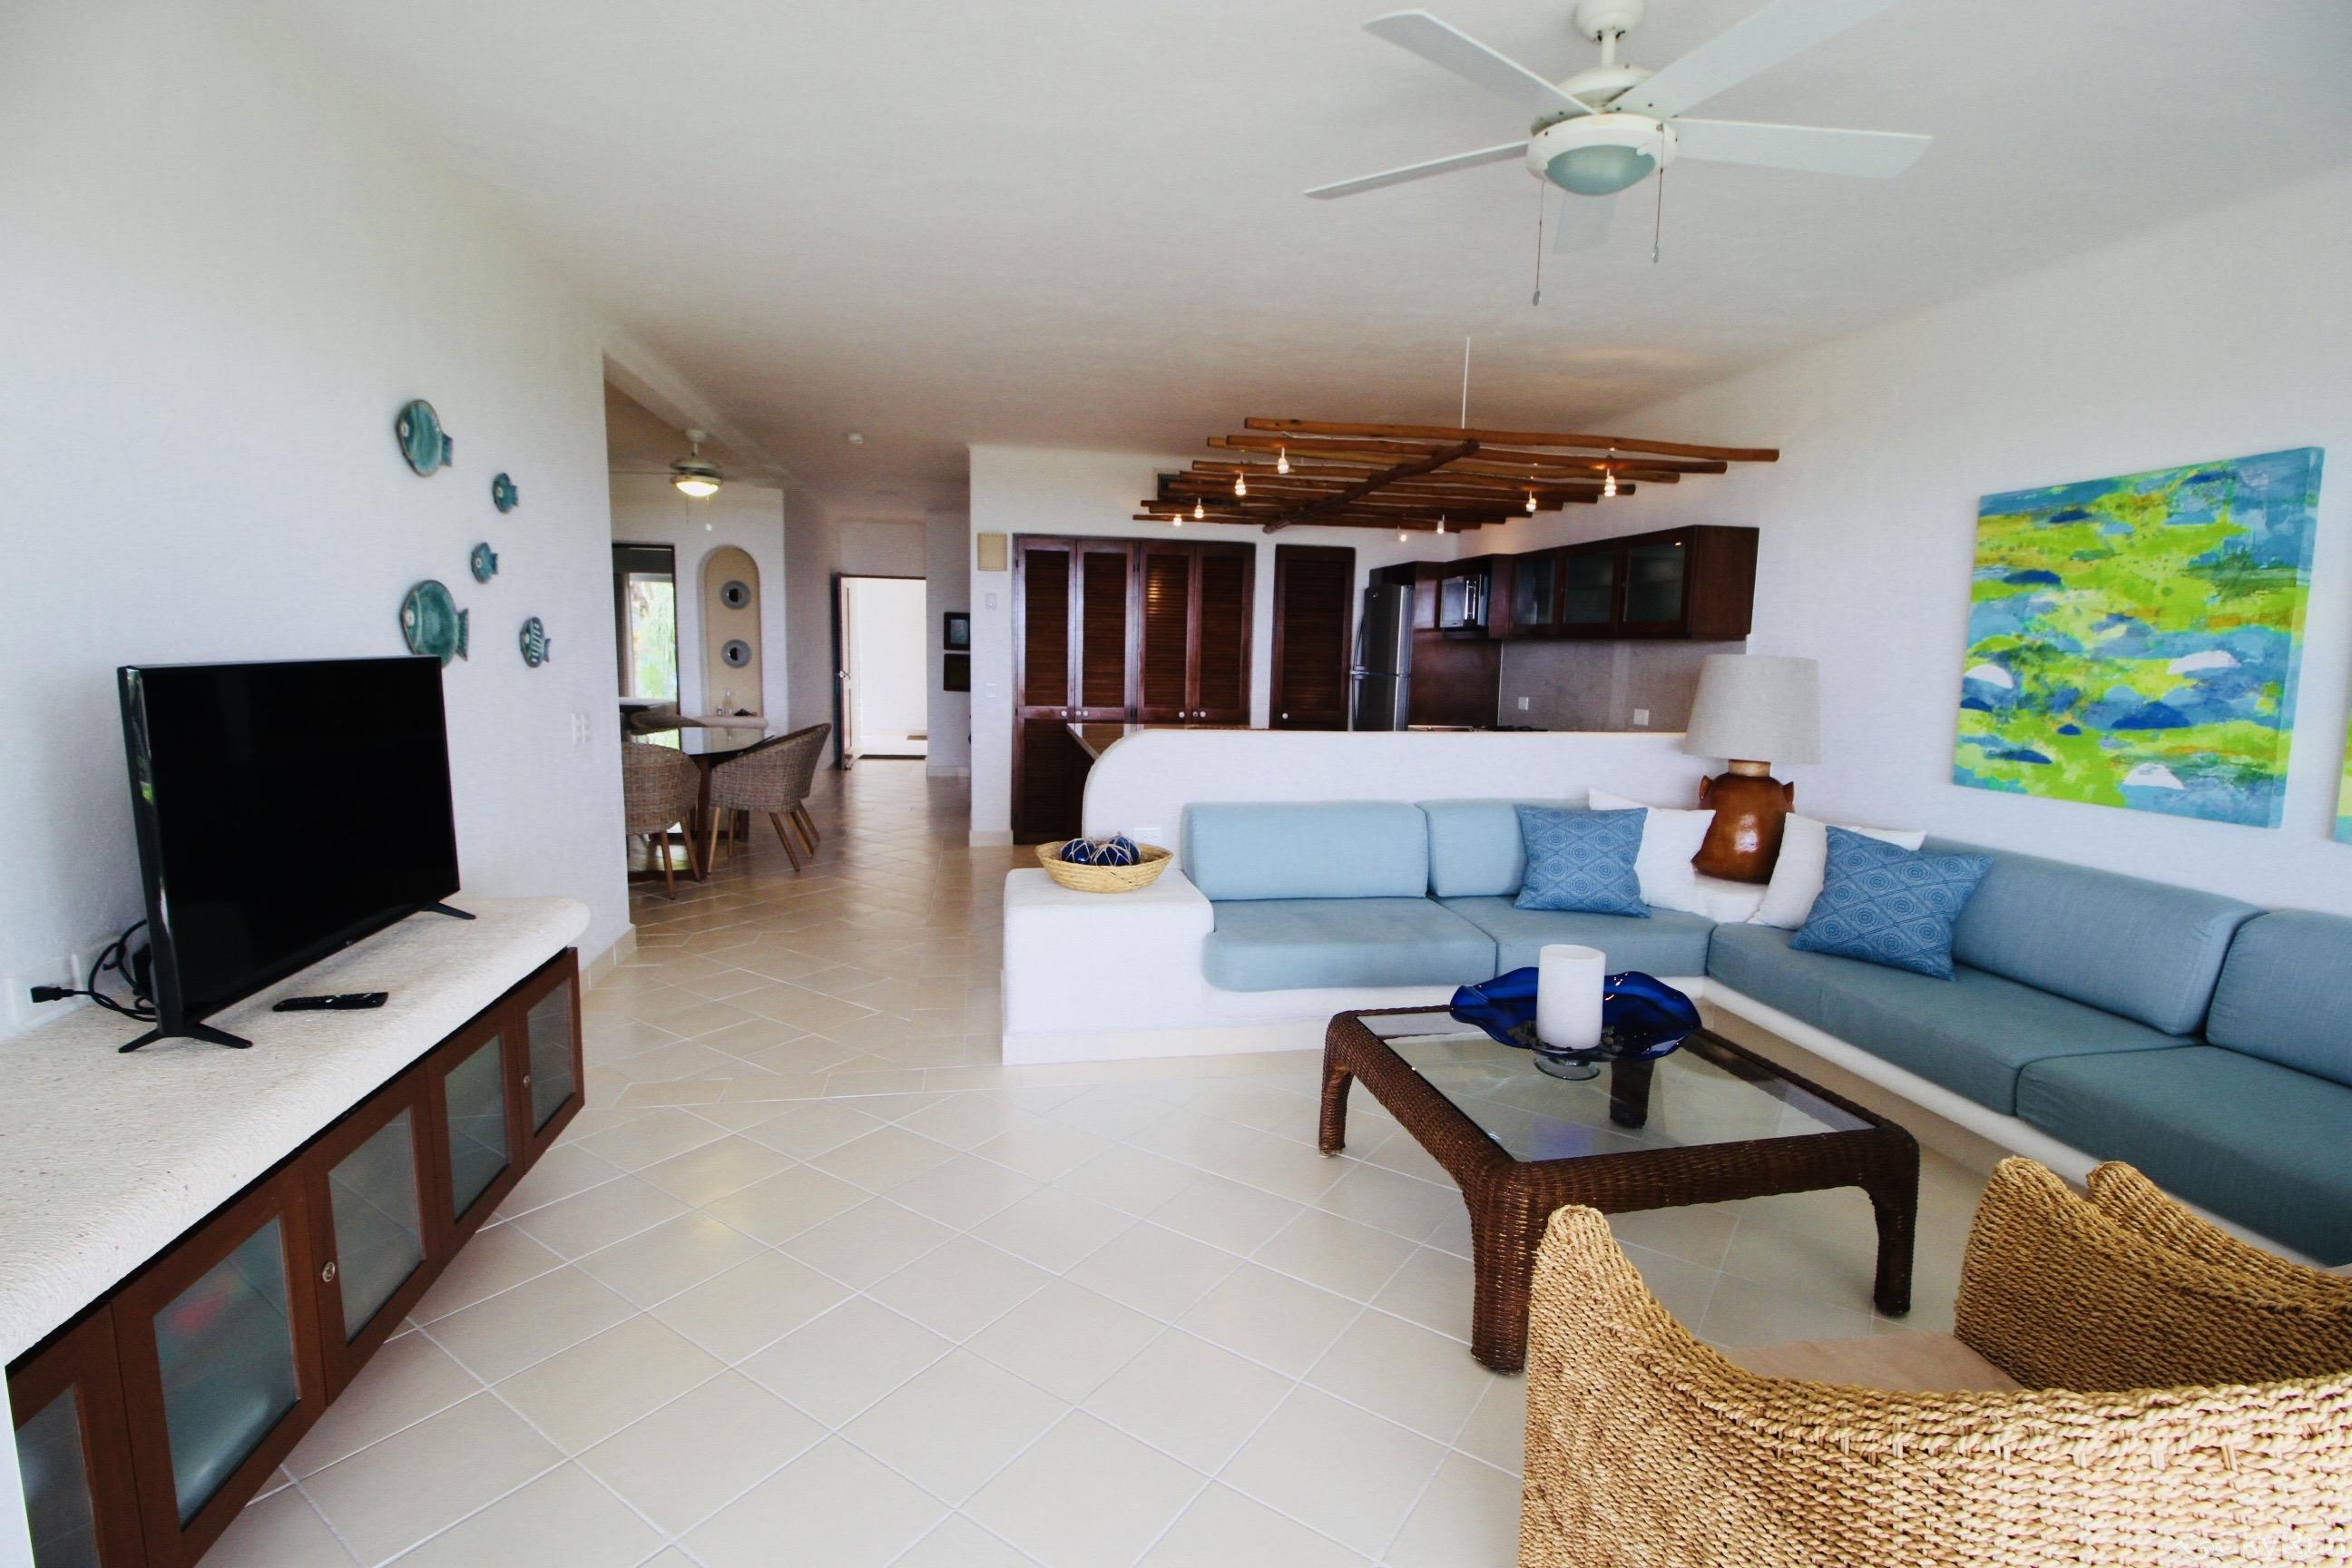 Las Villas Akumal 109 2 Bedroom 2 floor Living Room Area